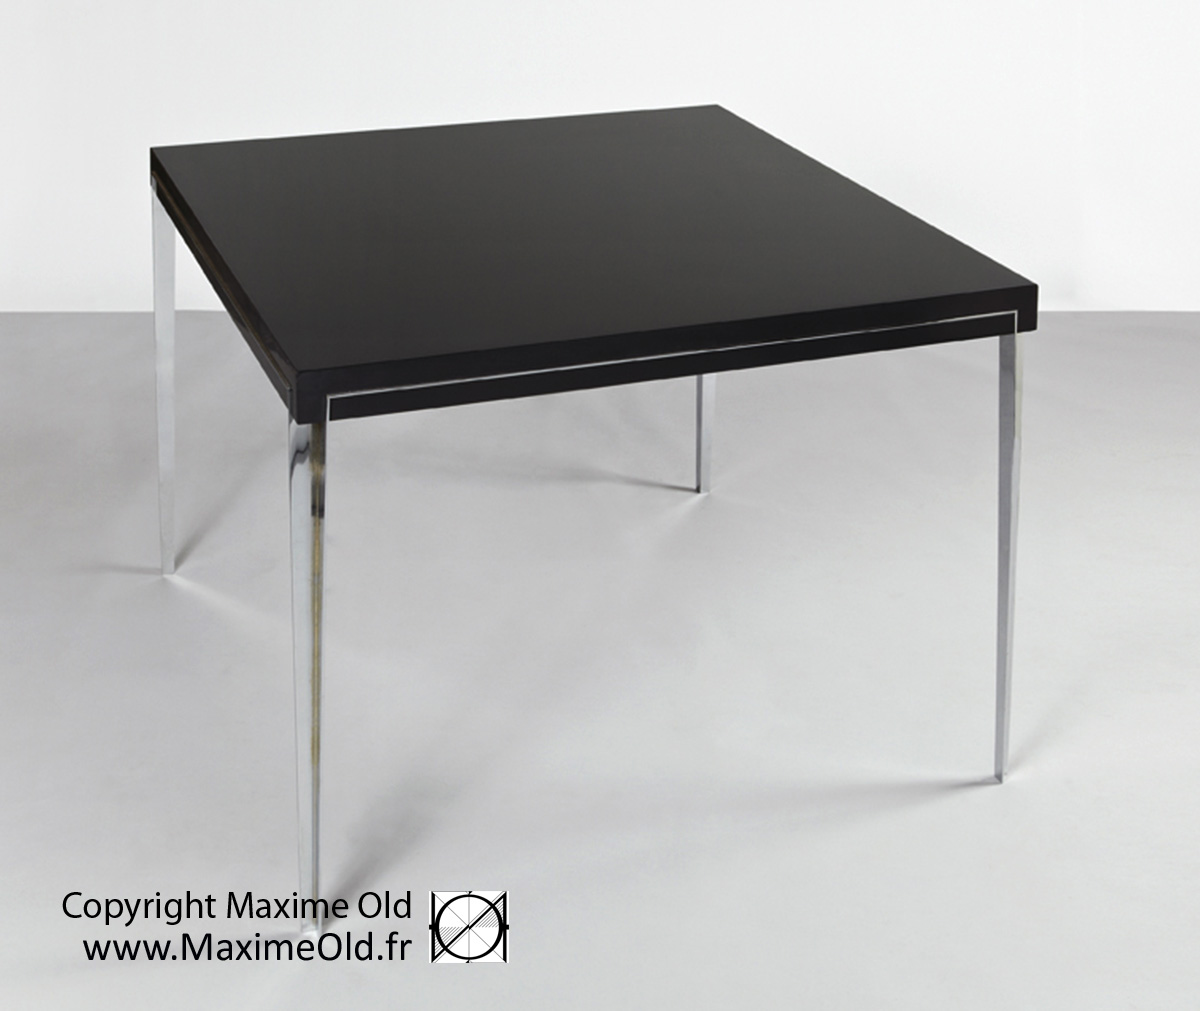 Maxime Old Tables-Desks: Maxime Old Paquebot France Onyx Table